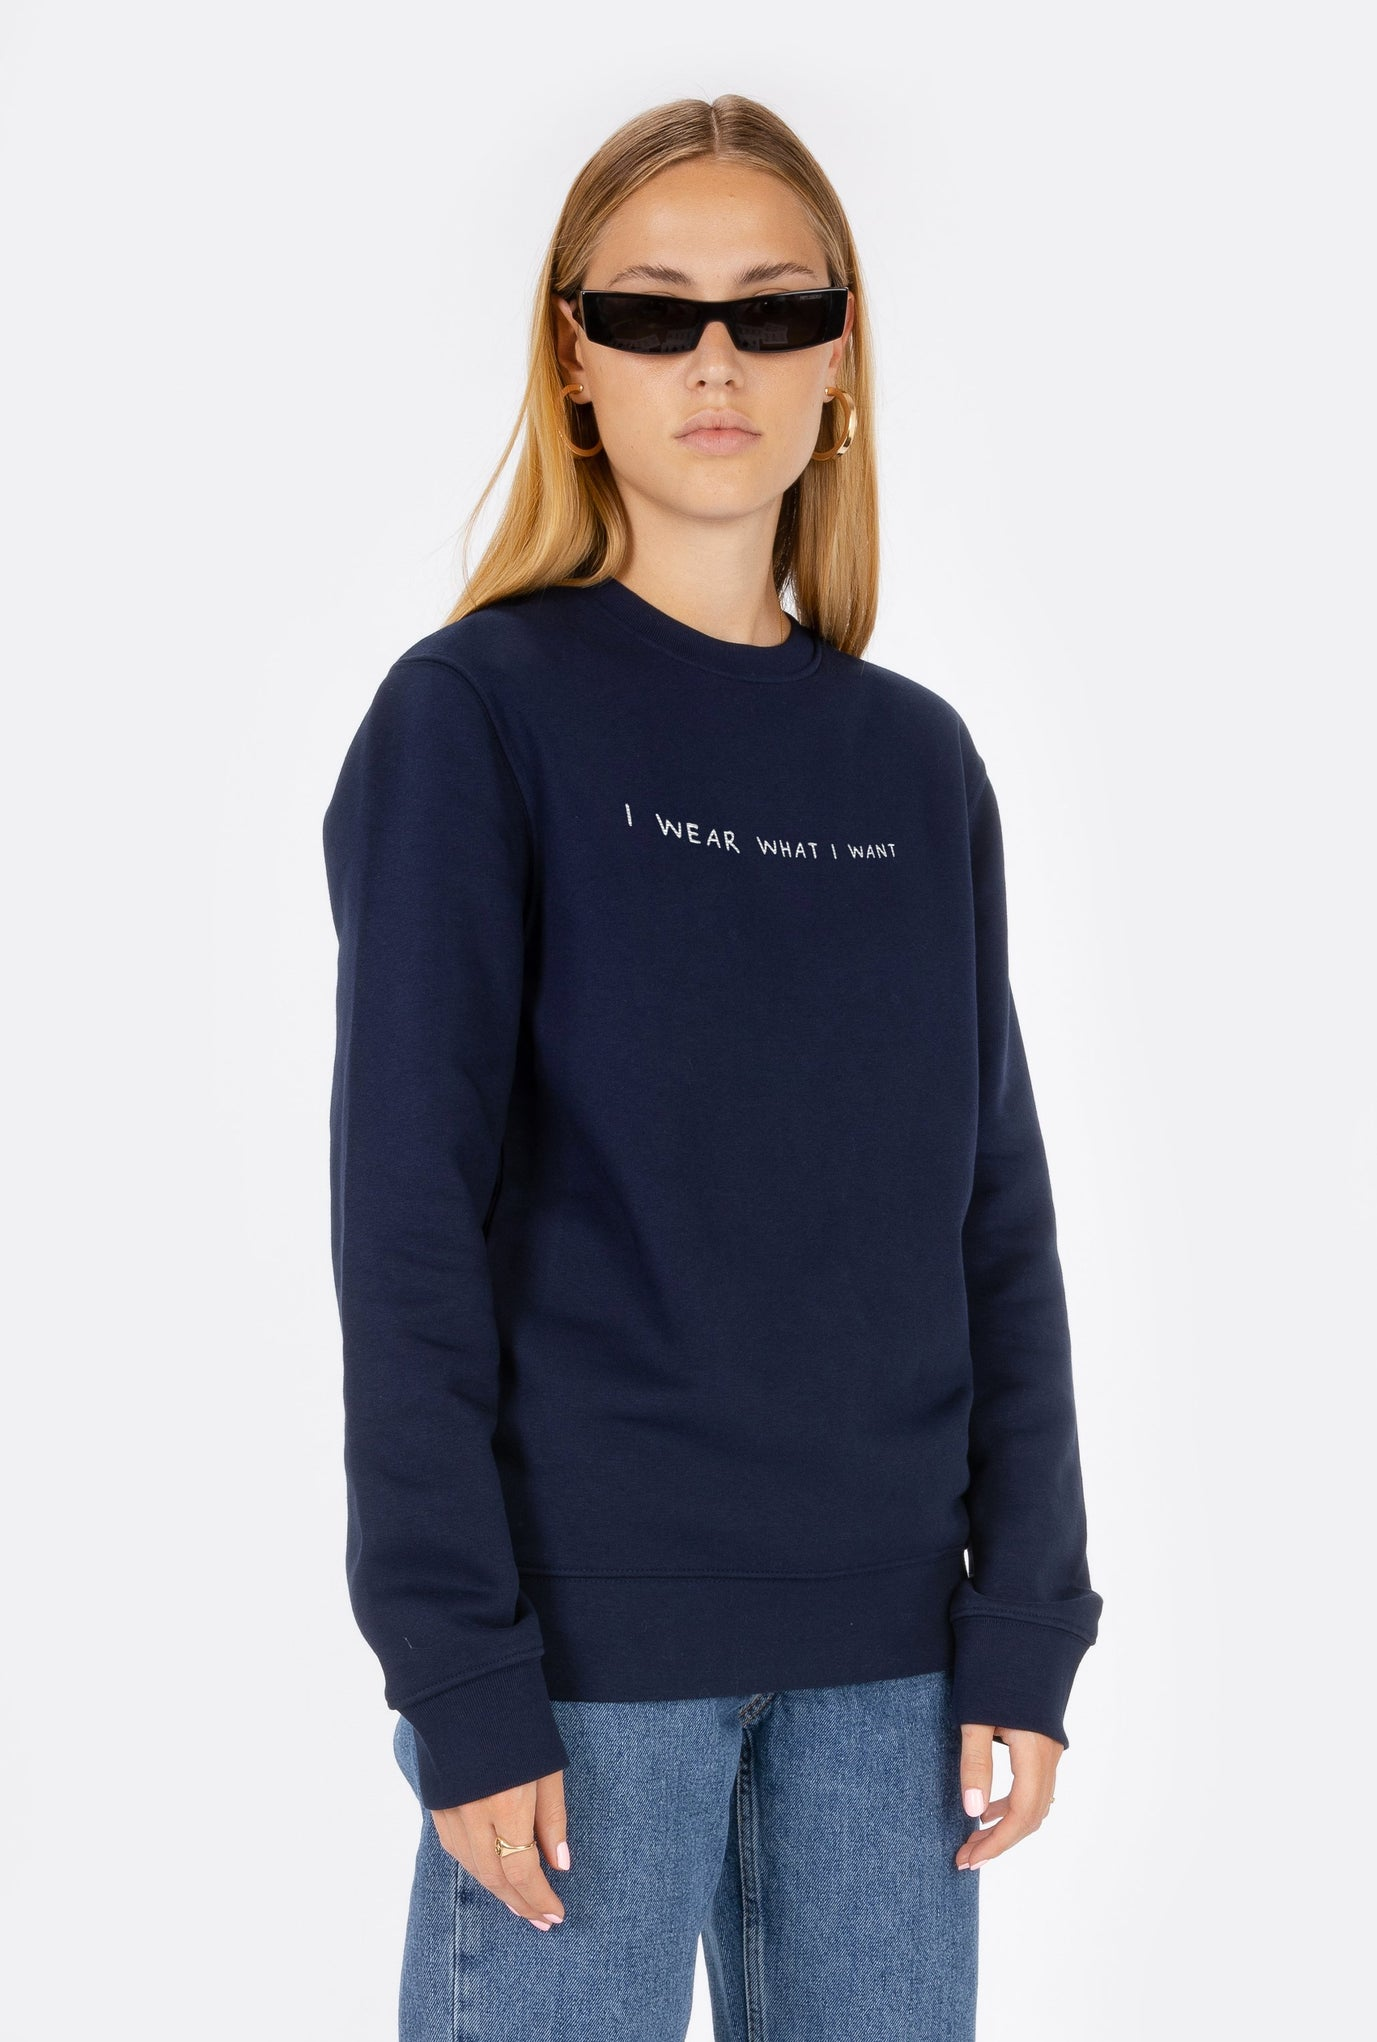 Crewneck I Wear What I Want - Embroidered